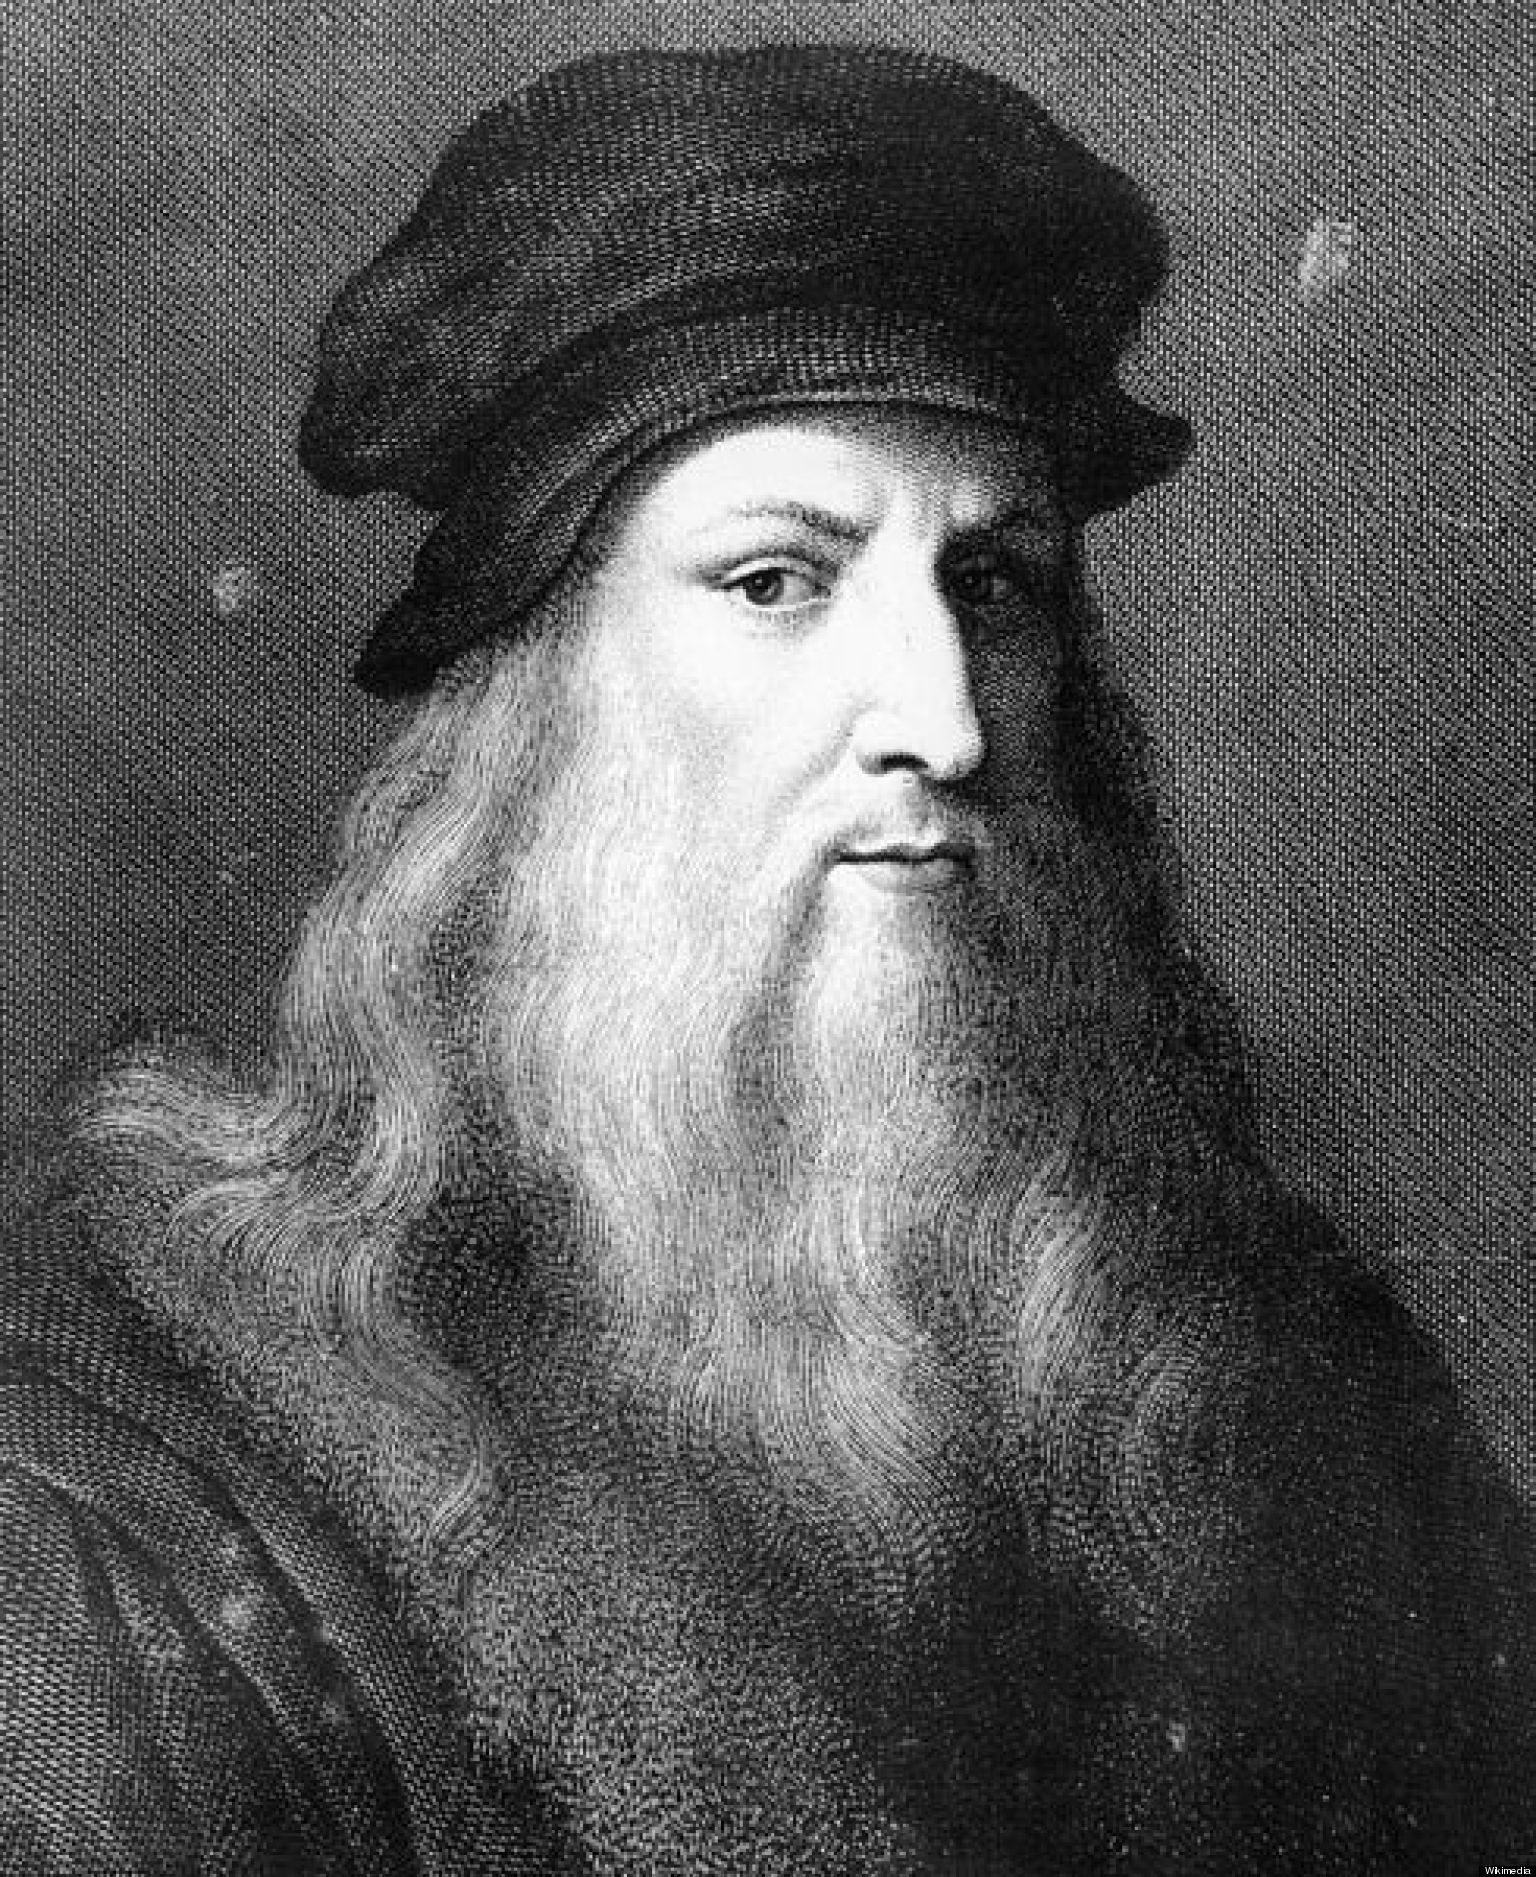 An essay topic about Leonardo Da vinci...?